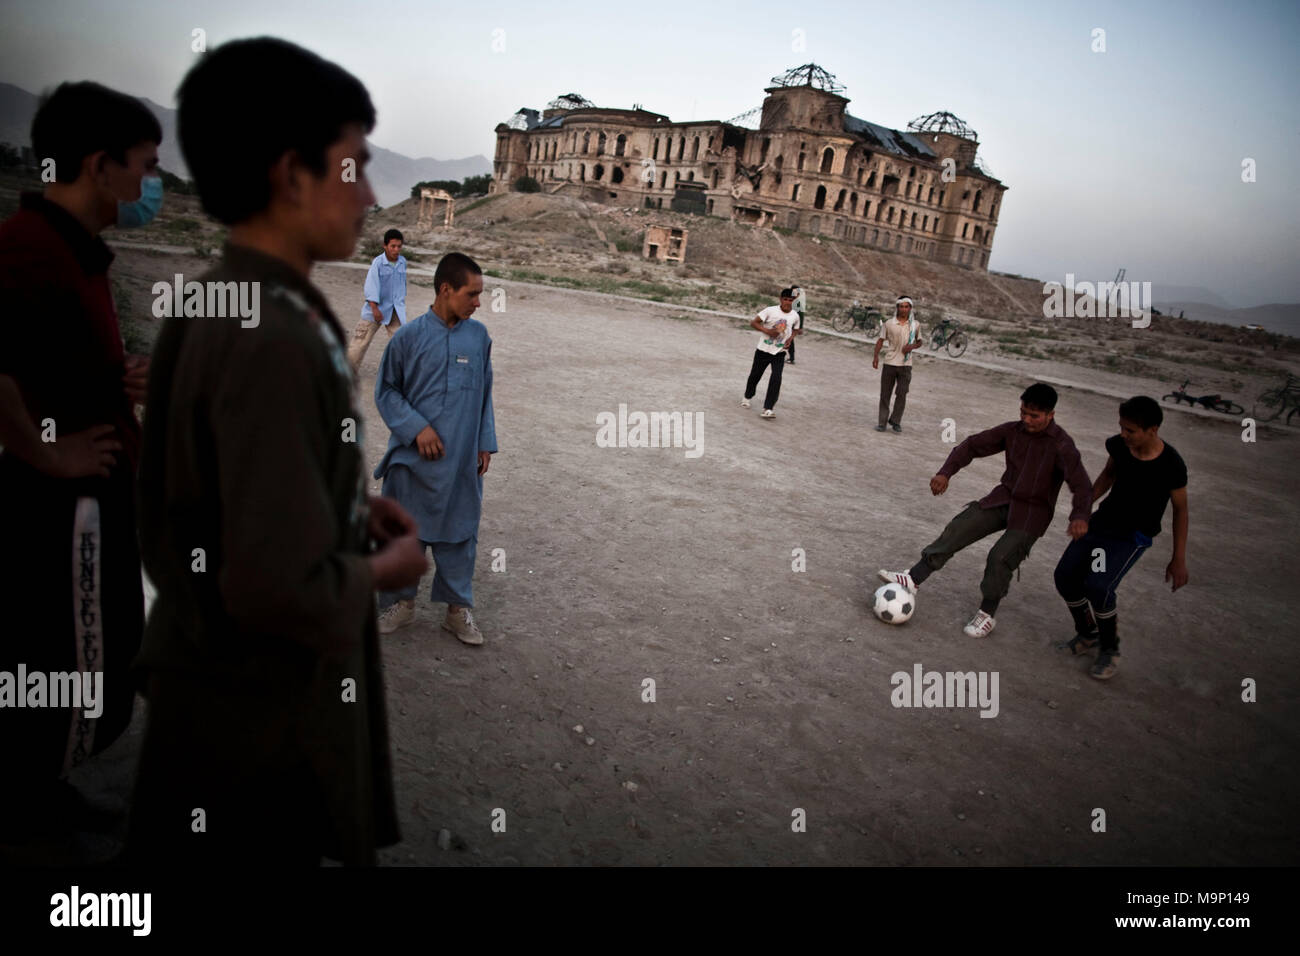 Afghan boys play soccer as the bombed out Darul Aman Palace which stands for 'abode of peace,' destroyed during the civil war in Kabul, Afghanistan, Wednesday, July 15, 2009. - Stock Image